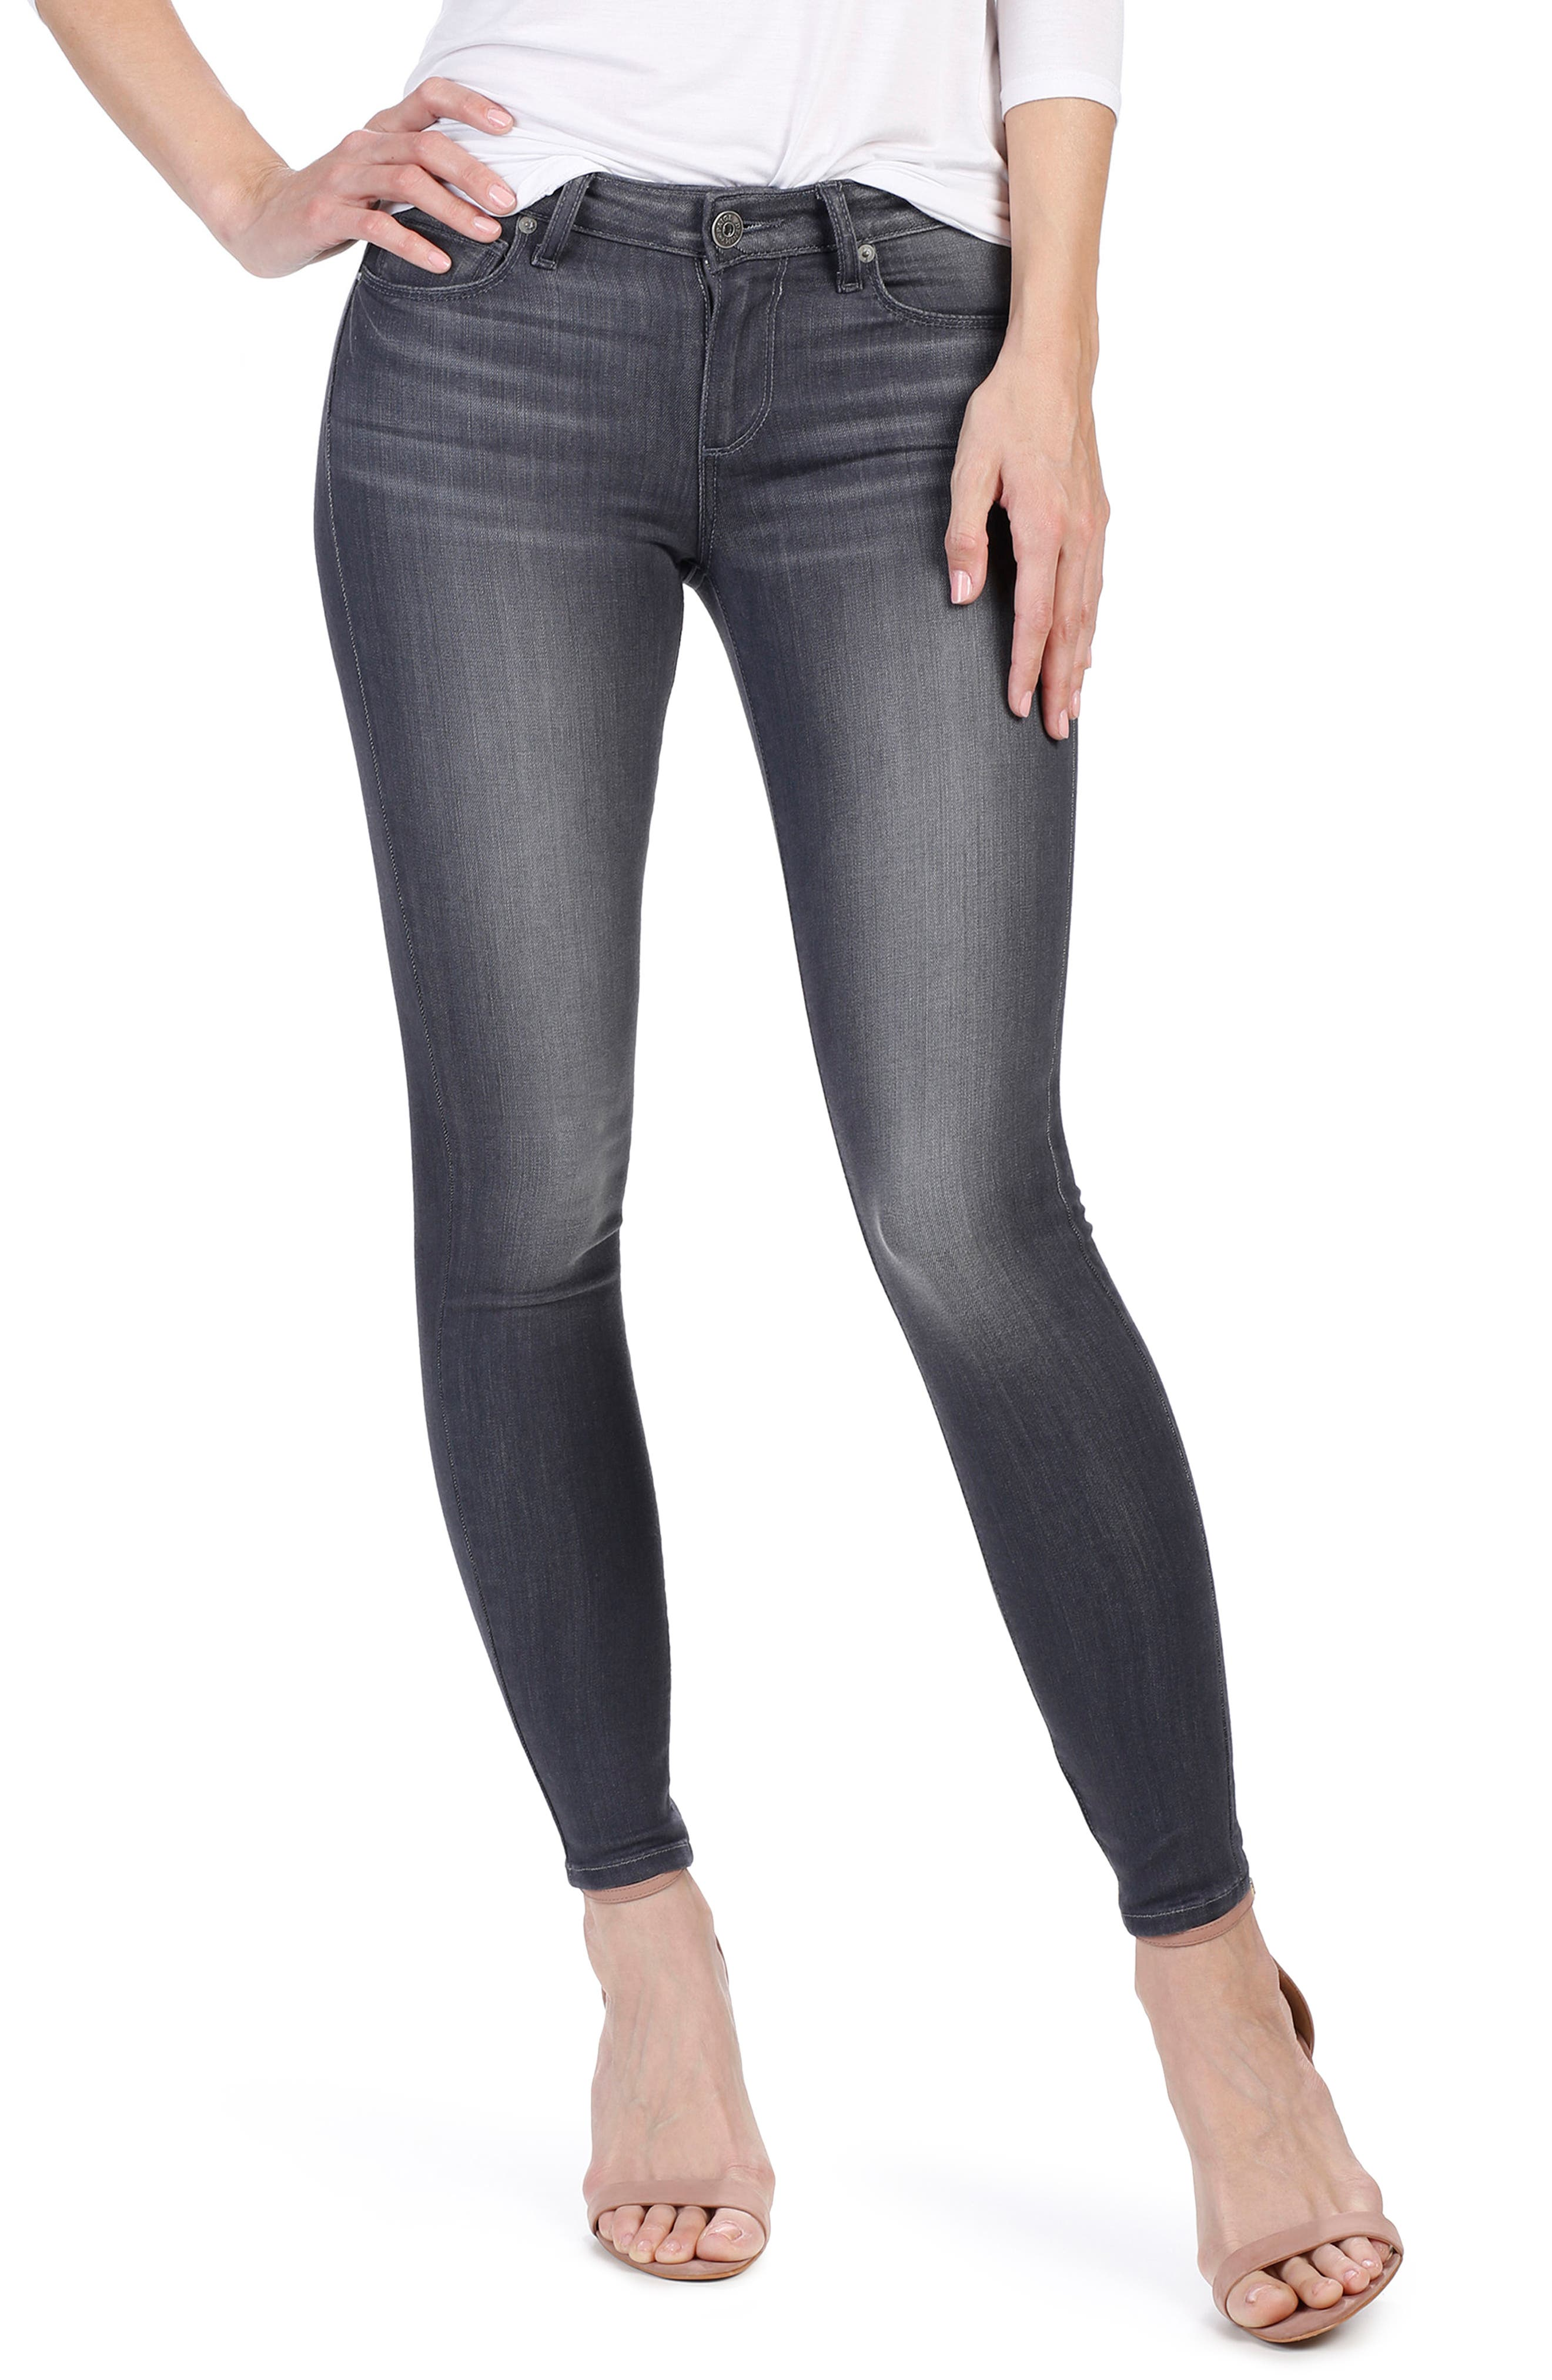 Alternate Image 1 Selected - PAIGE Transcend - Verdugo Ankle Skinny Jeans (Summit Grey)